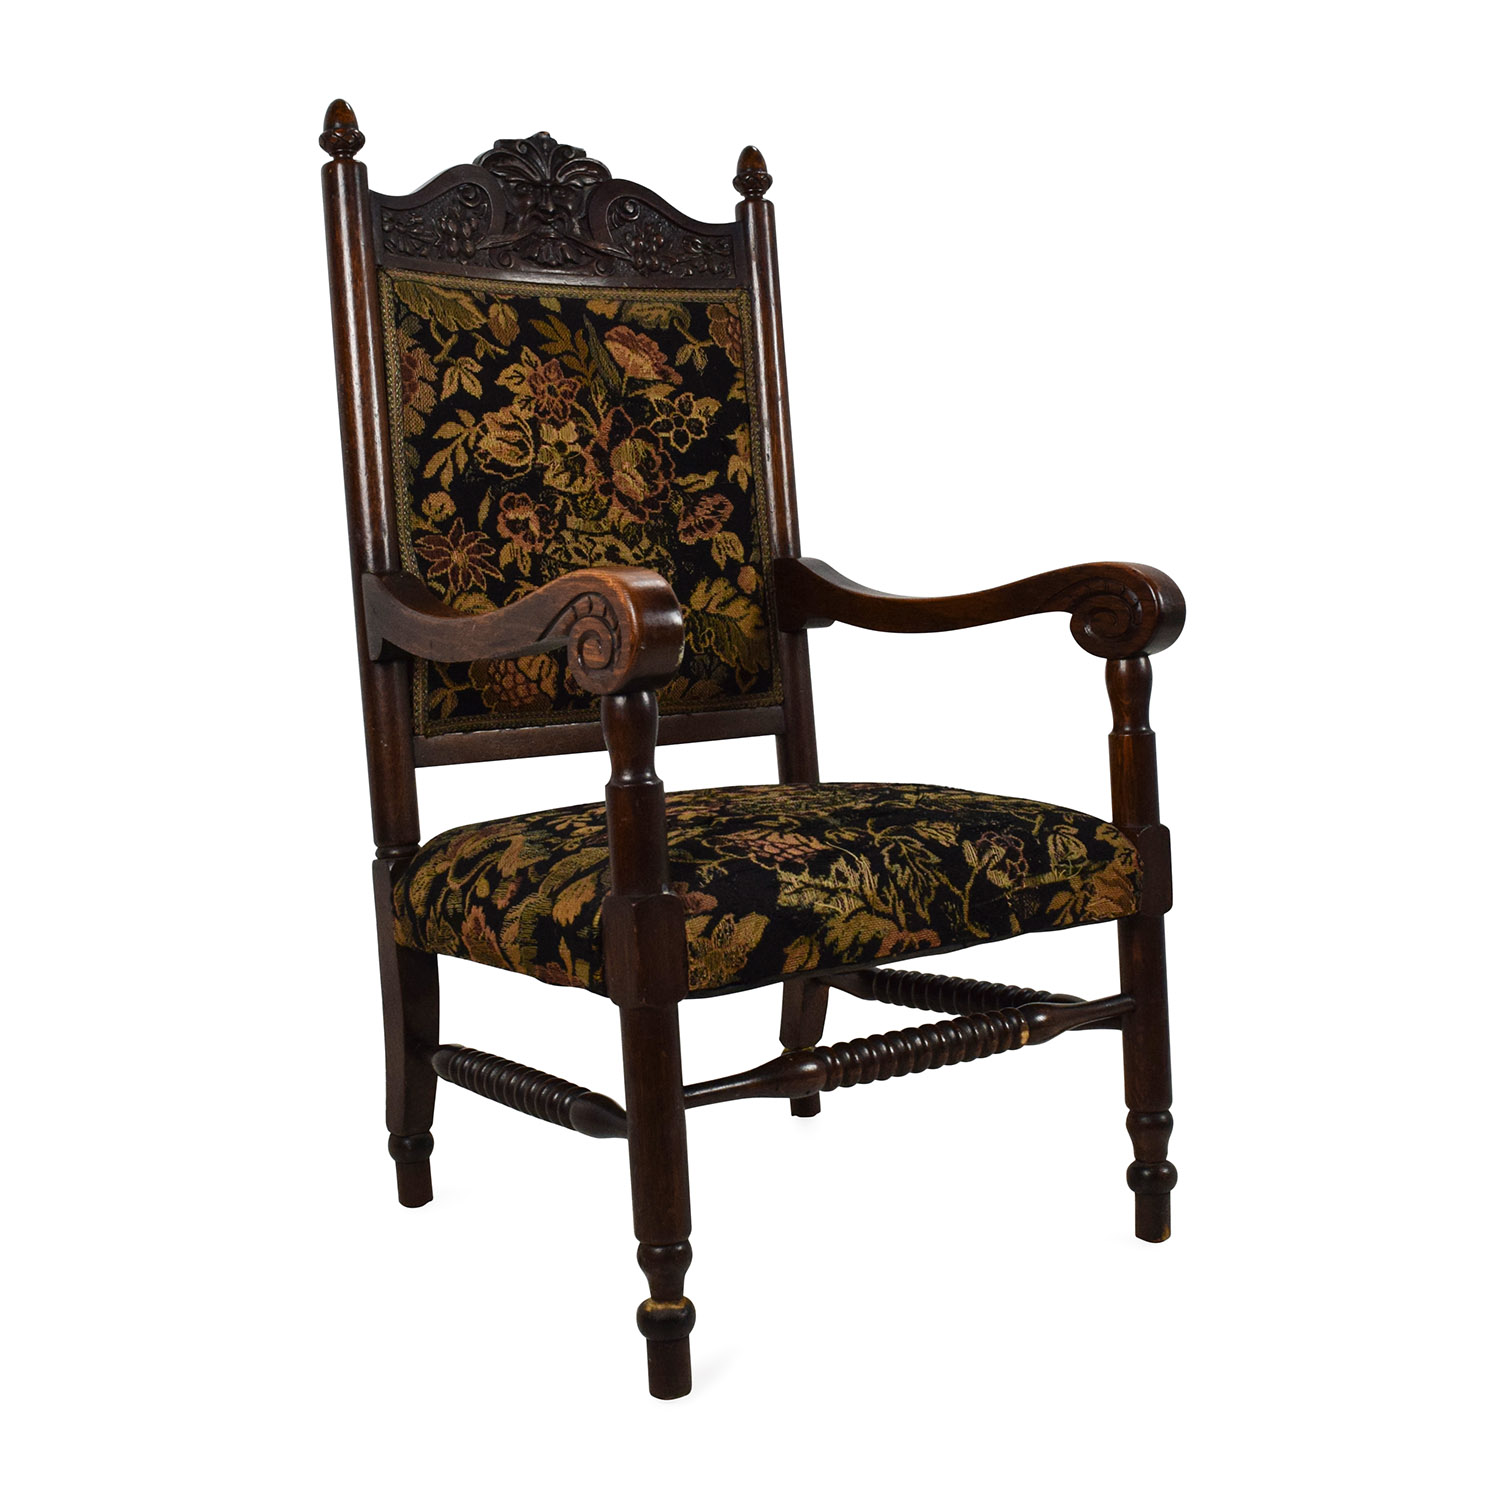 84% OFF - Antique Tudor Upholstered Chair / Chairs